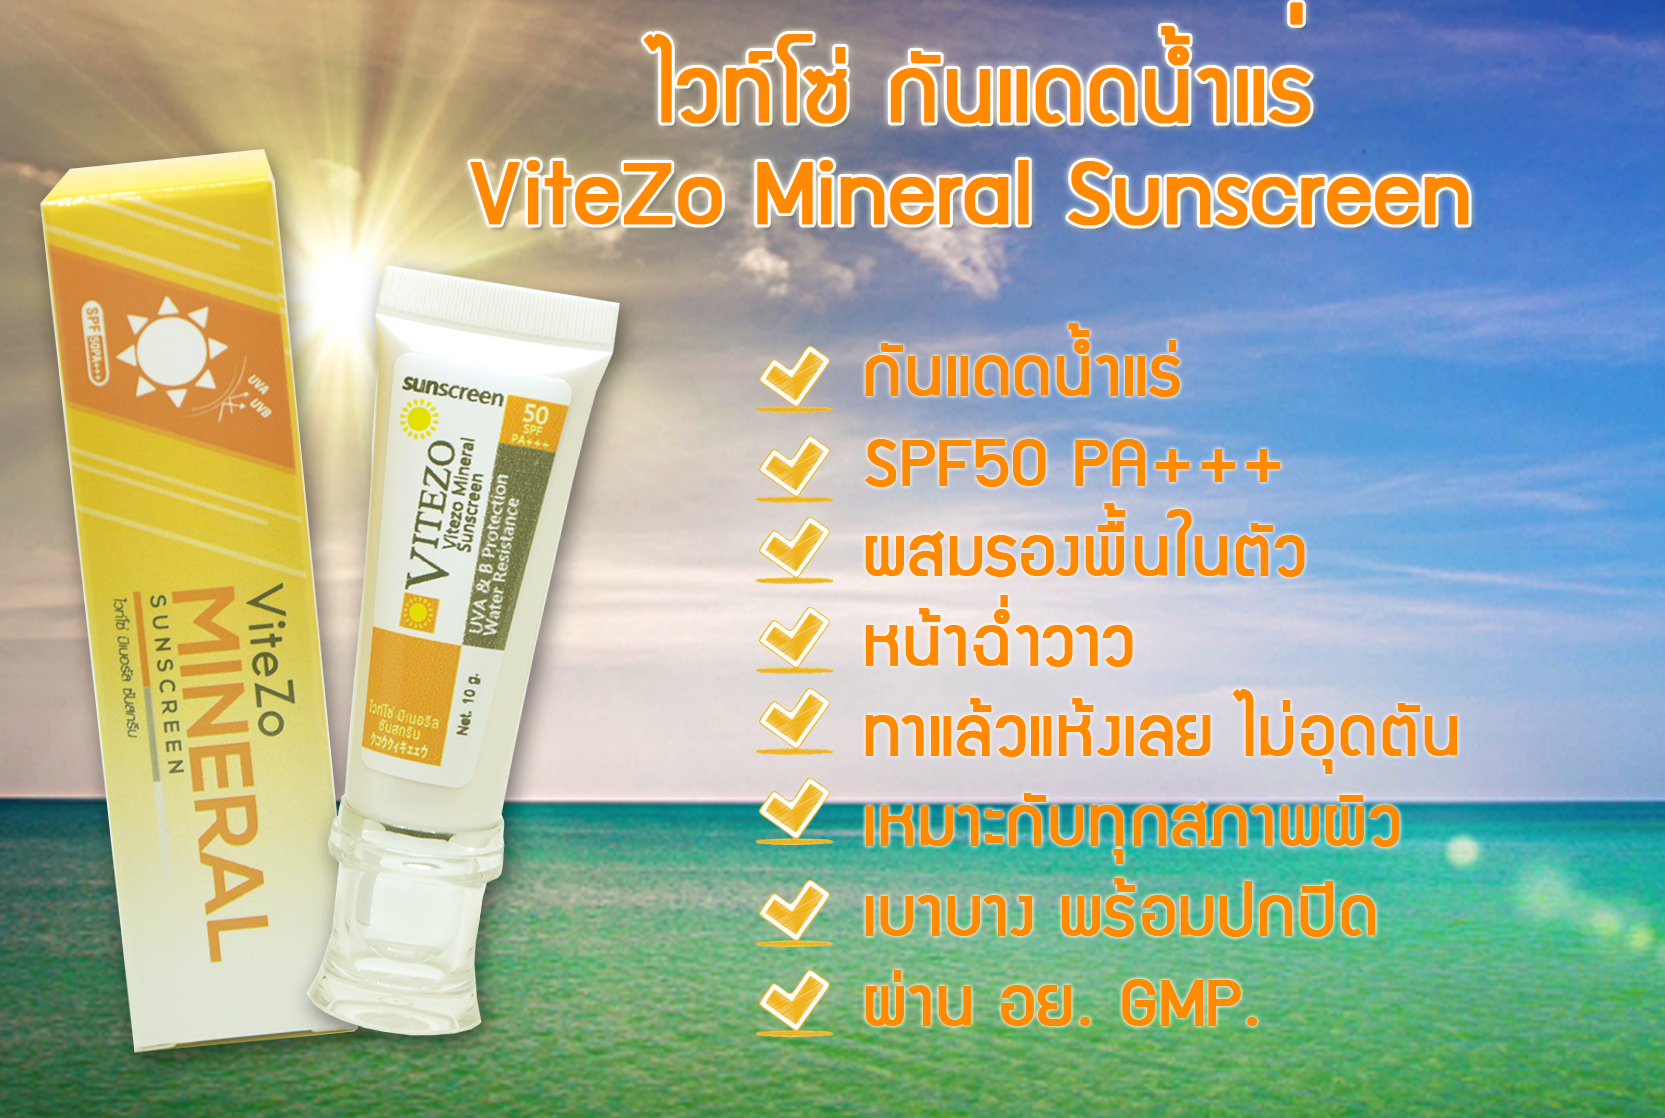 Vitezo mineral sunscreen